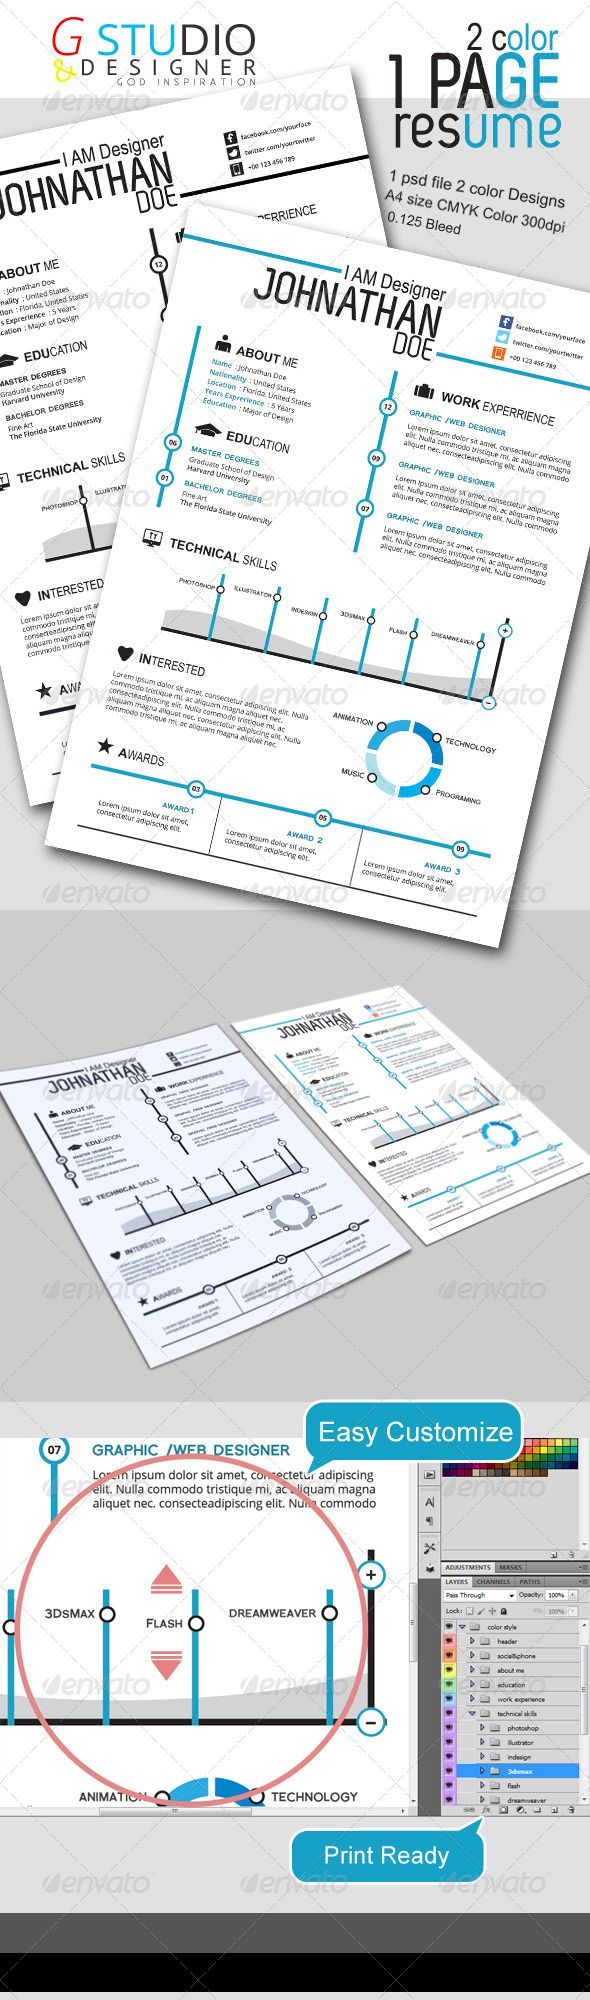 162 best print templates images on pinterest